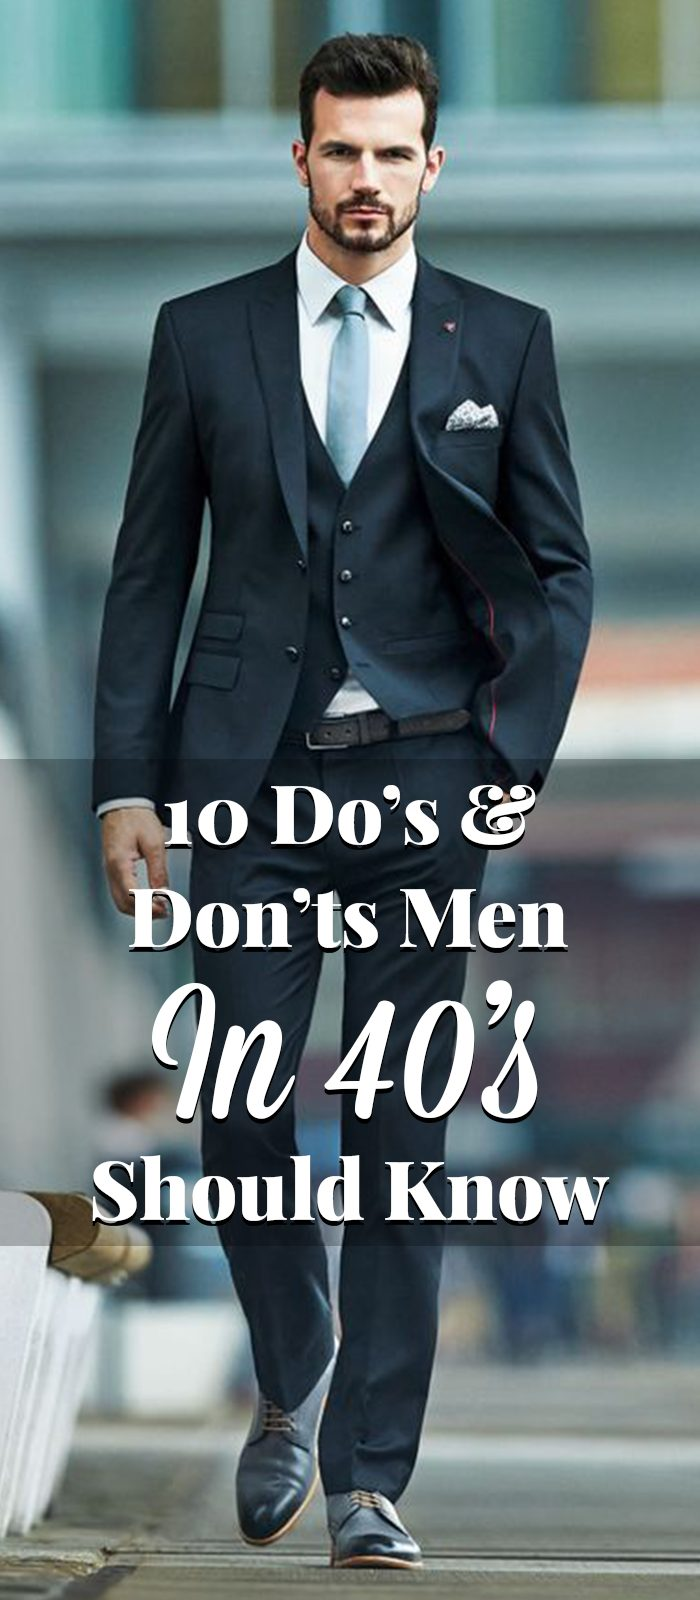 10 Do's & Don'ts Men In 40's Should Know